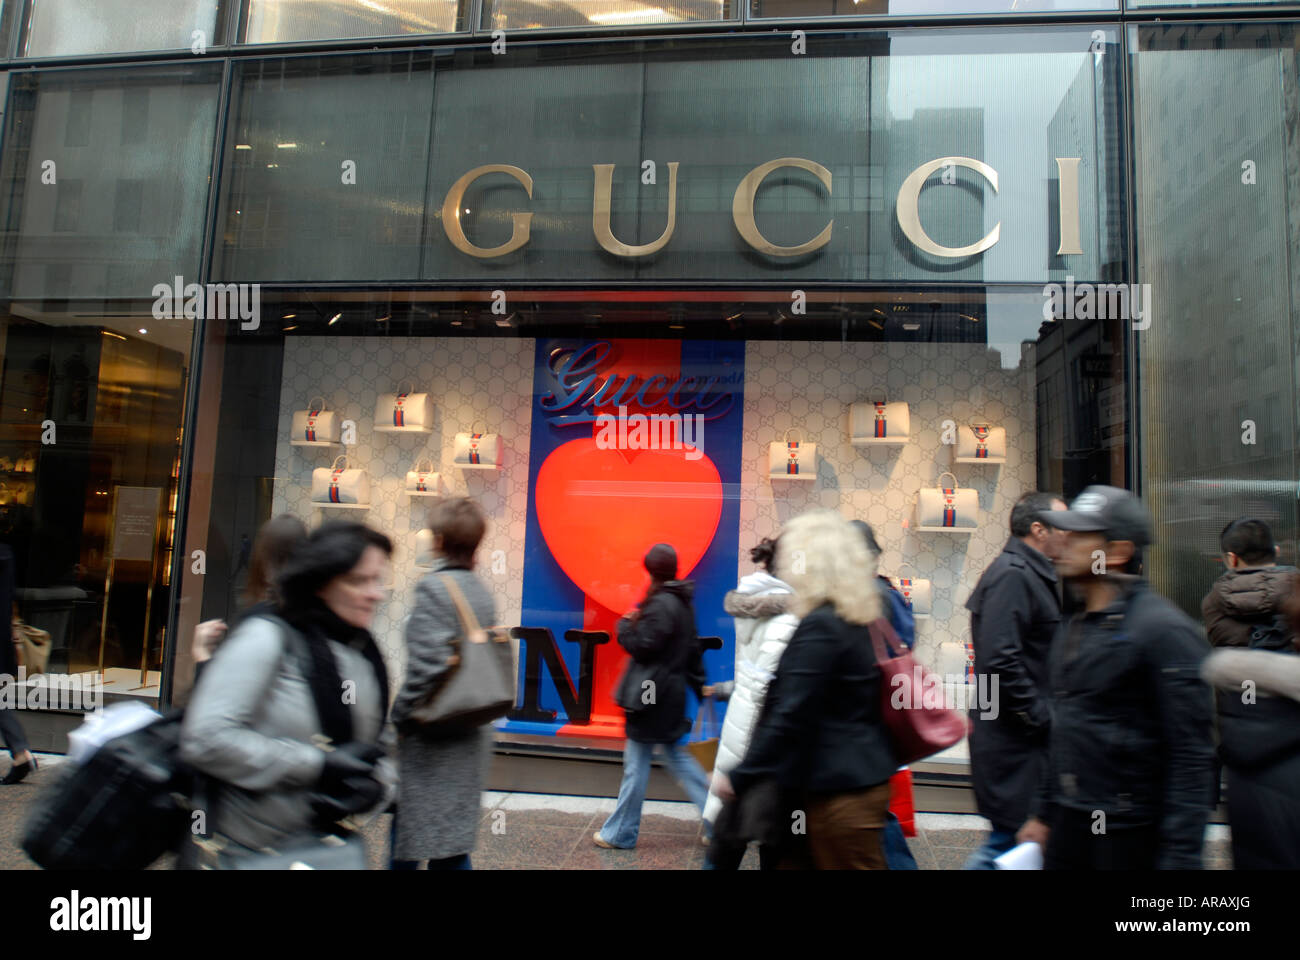 9a3080977b The new Gucci store in Trump Tower on Fifth Ave featuring the Gucci Loves NY  handbag